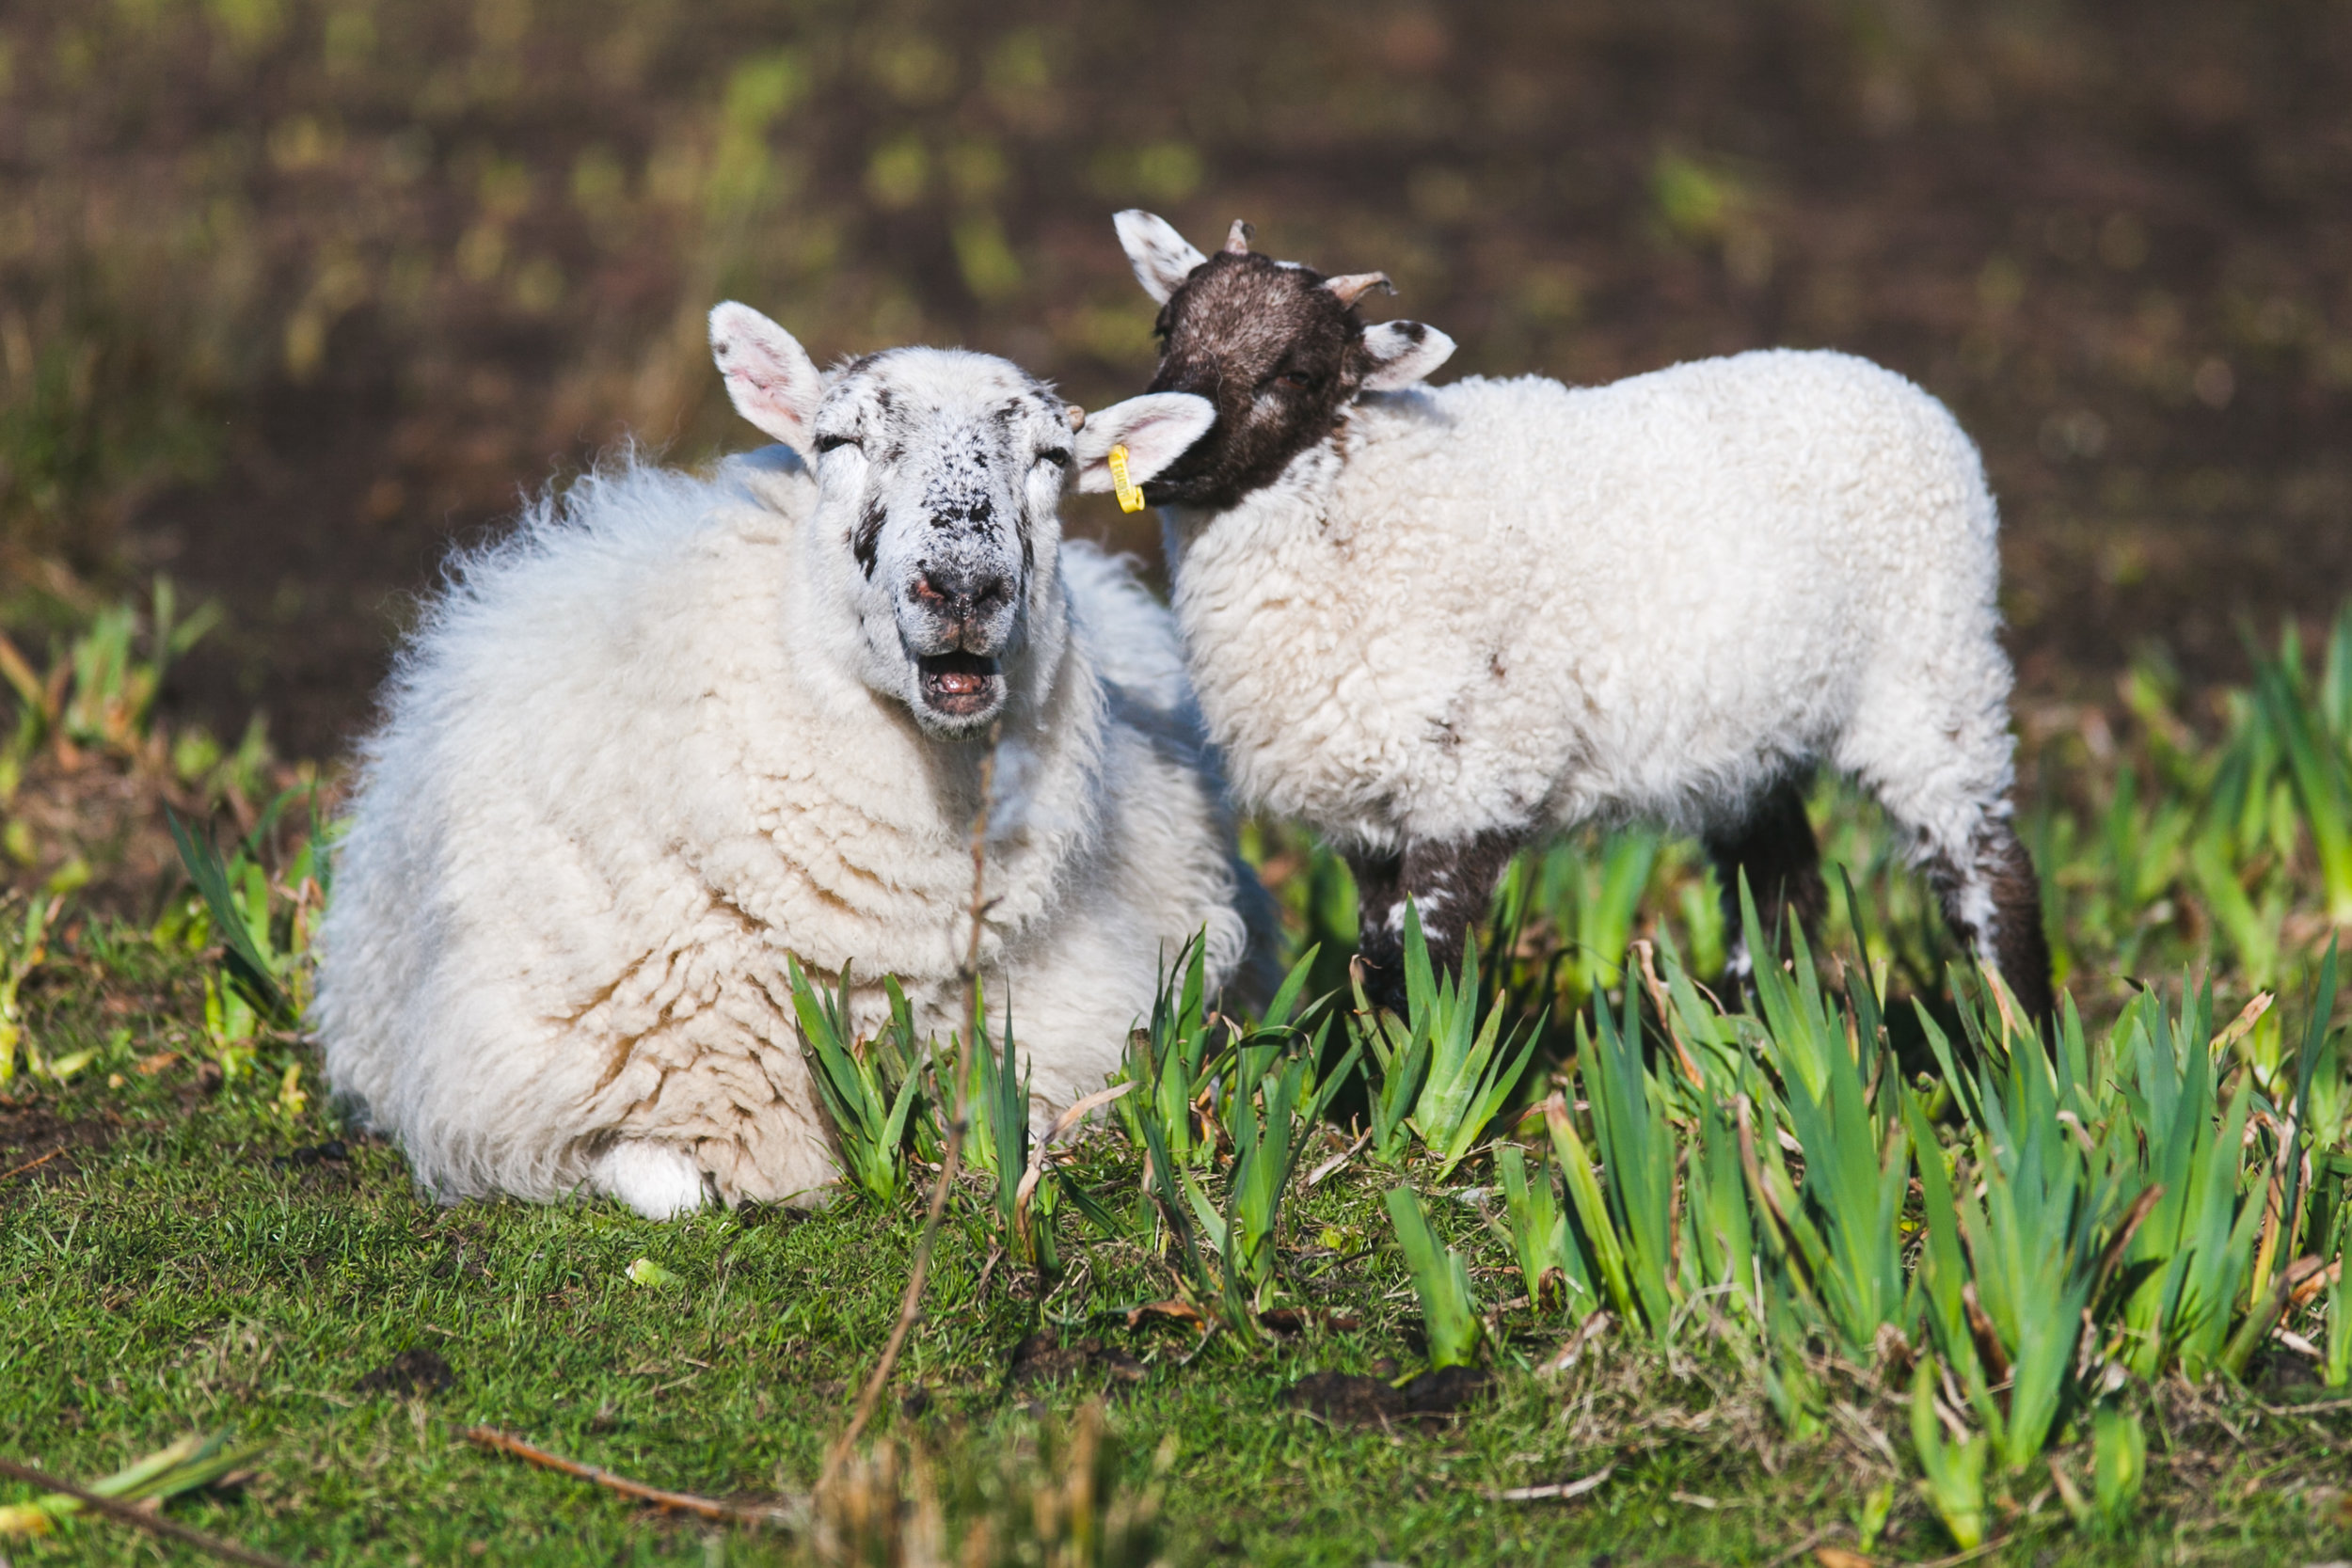 An adult sheep with a lamb